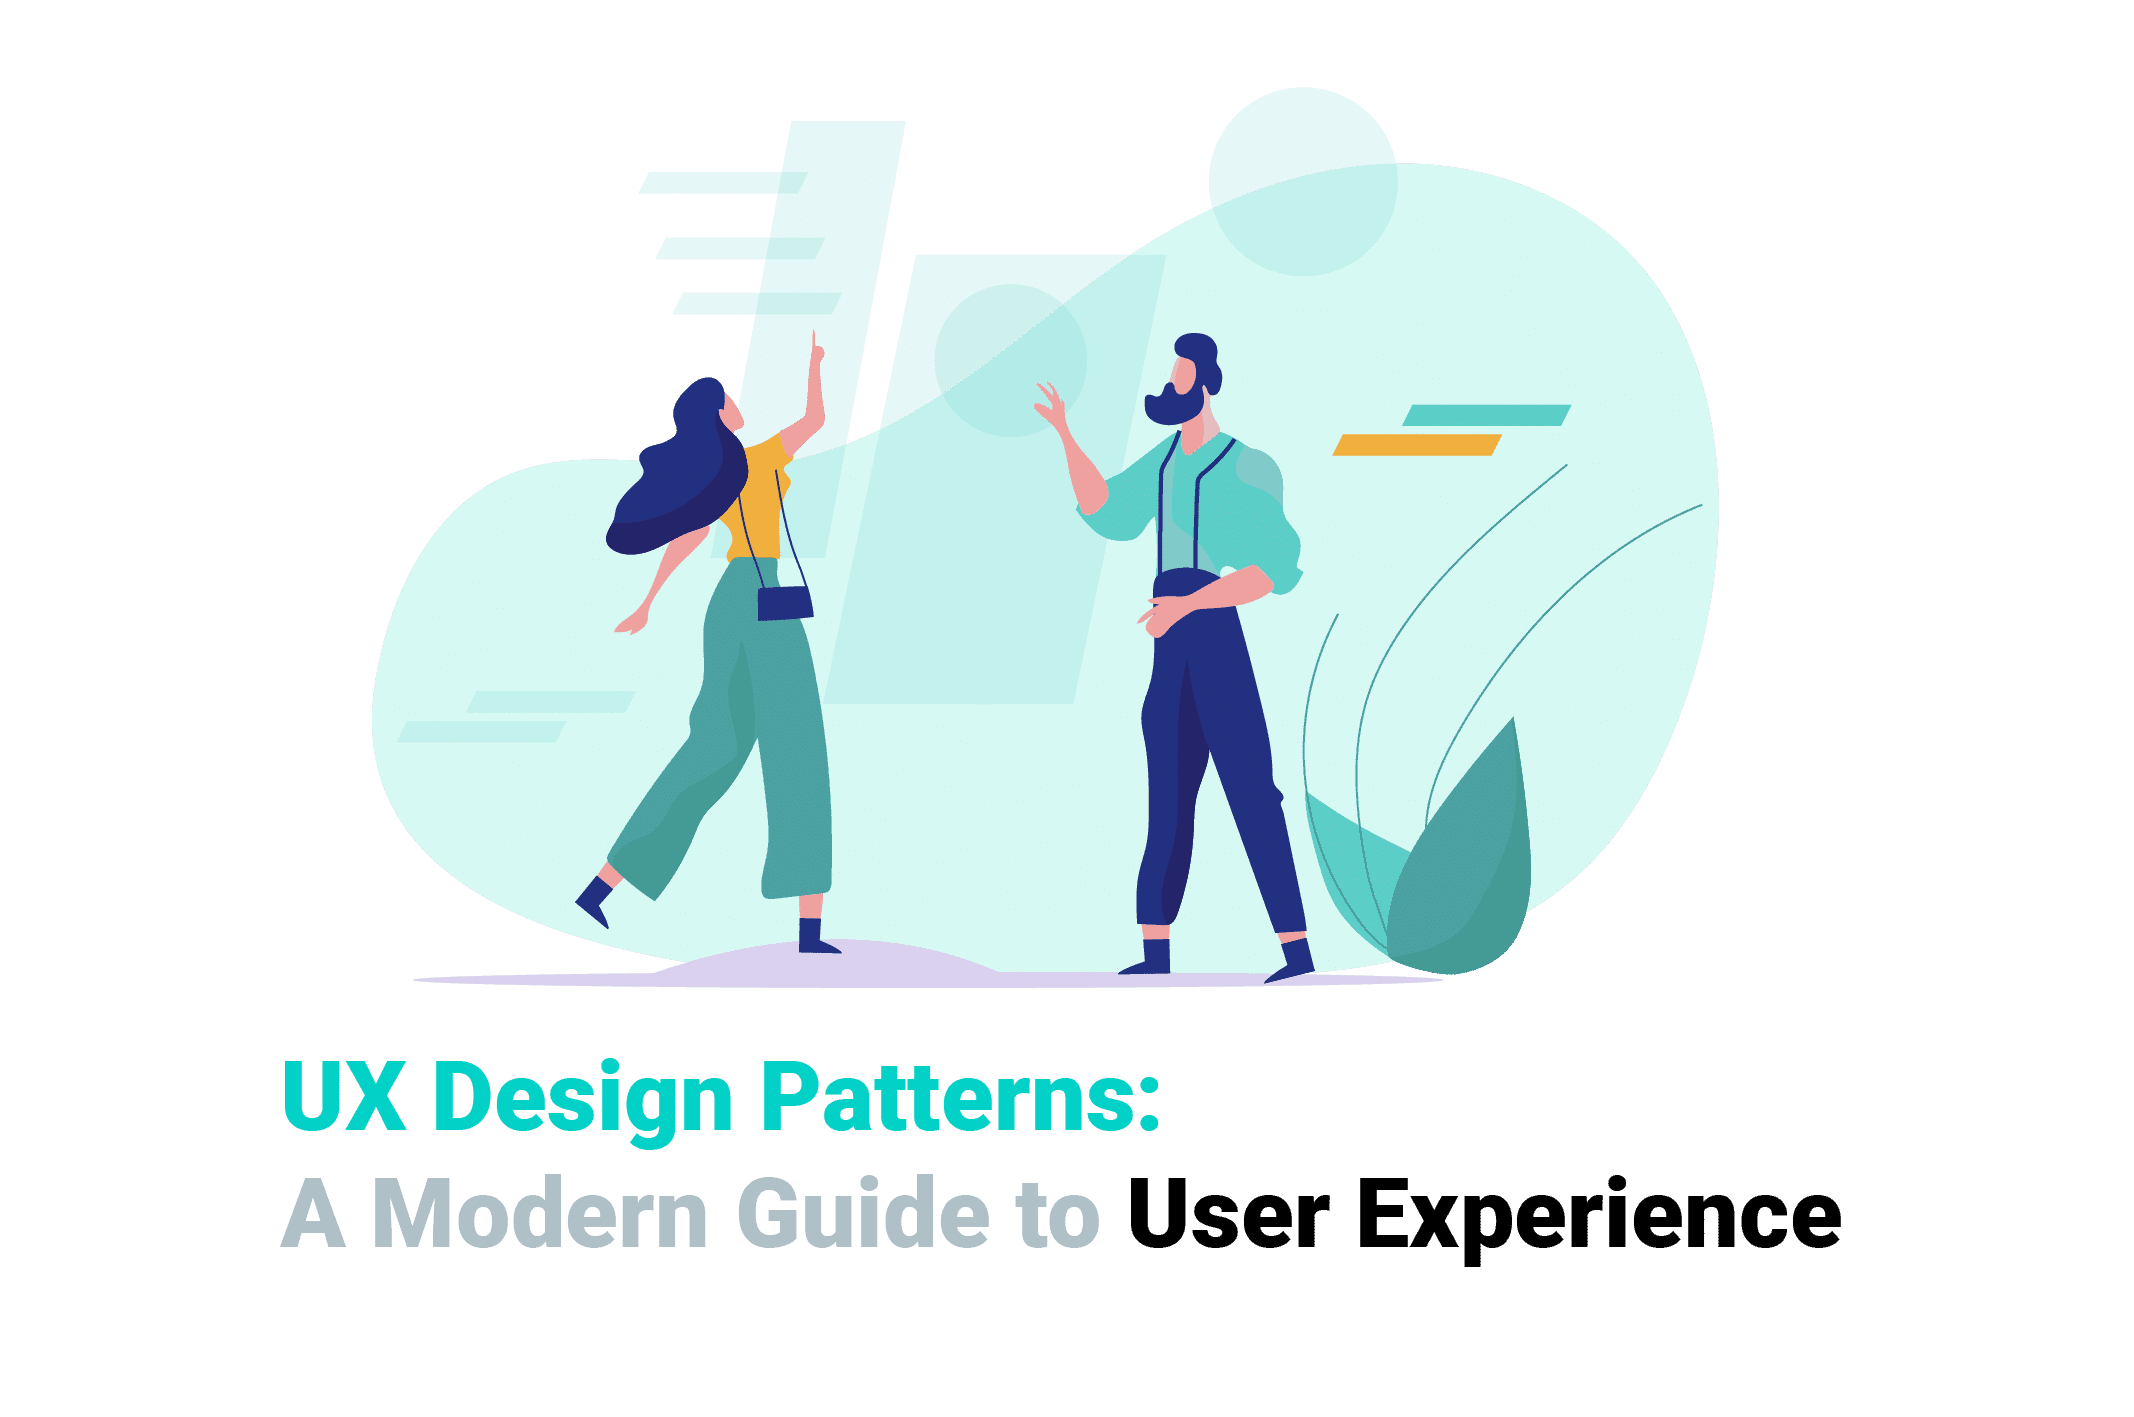 UX Design Patterns A Modern Guide to User Experience brought to you by a globally competitive designers from WANDR Studio, voted #1 Product Strategy and UX Design Firm